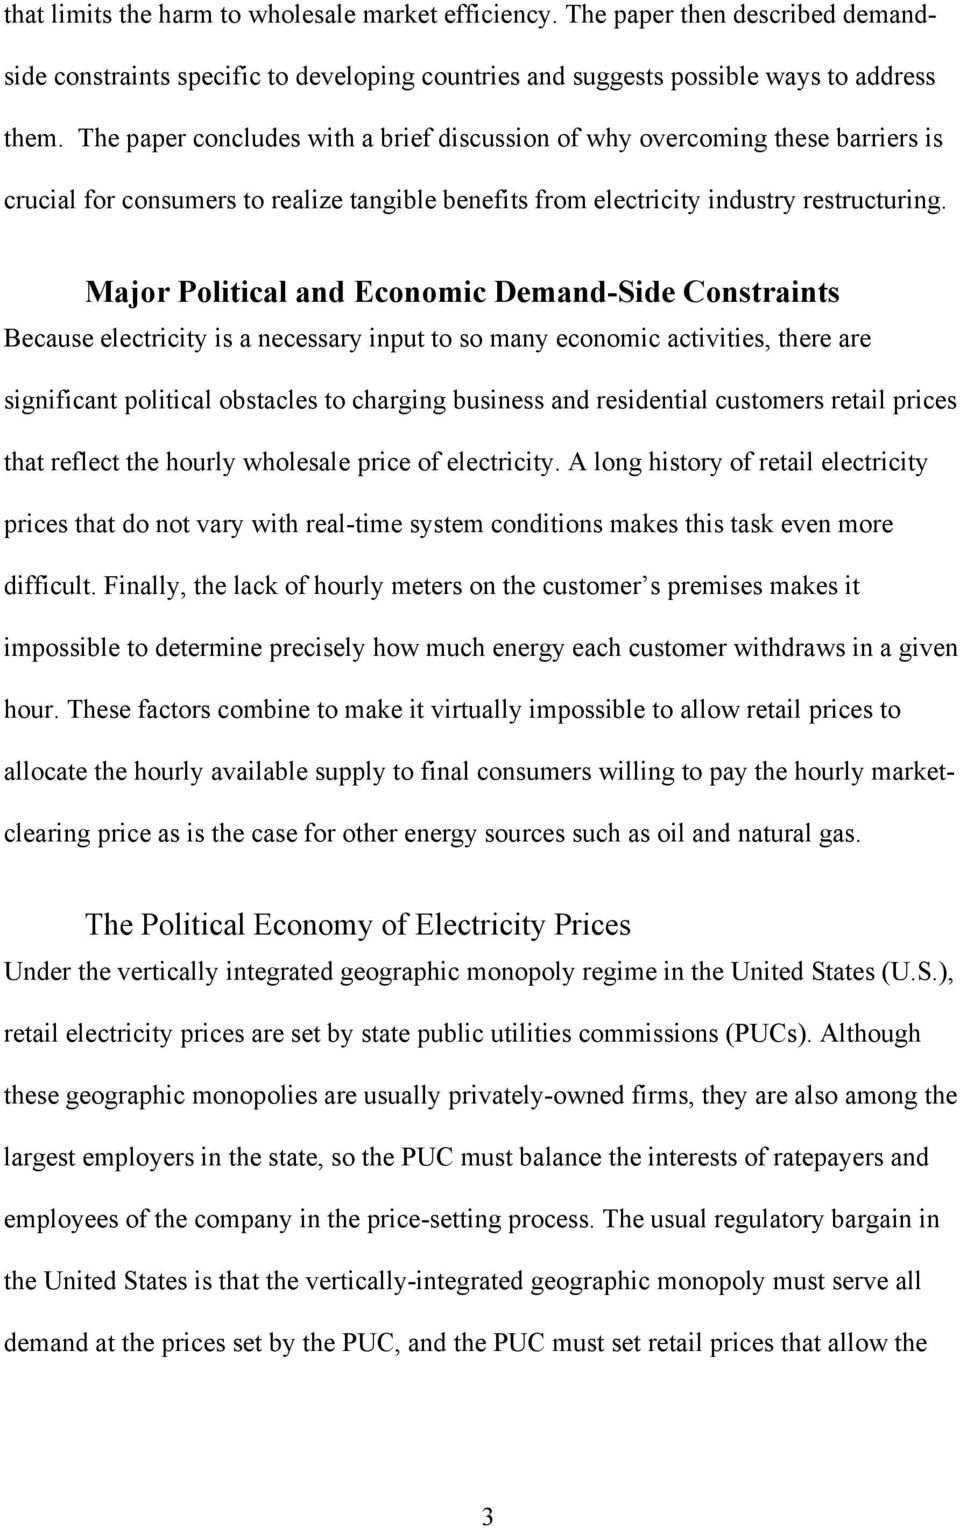 Major Political and Economic Demand-Side Constraints Because electricity is a necessary input to so many economic activities, there are significant political obstacles to charging business and